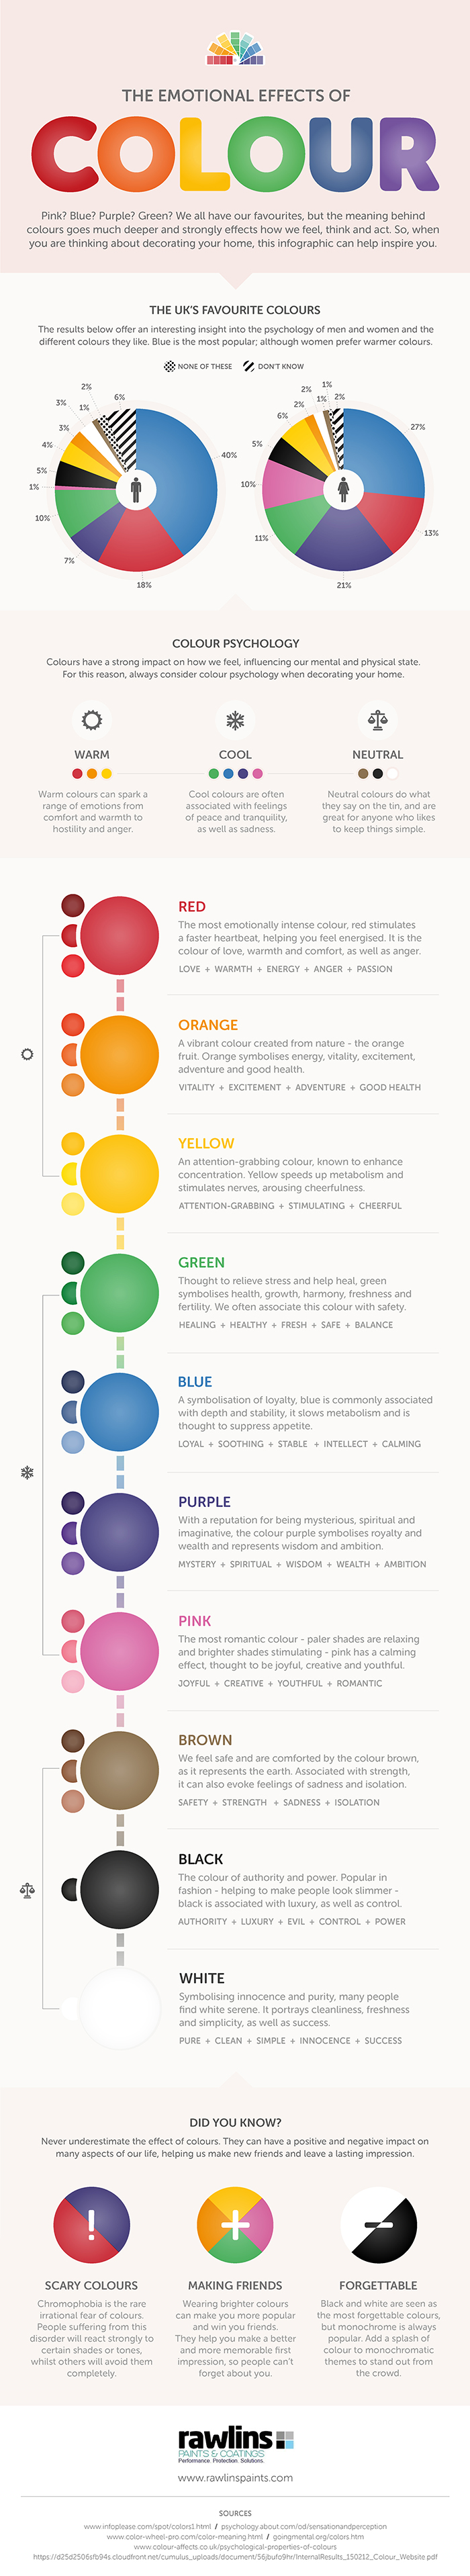 The Emotional Effects of Colour